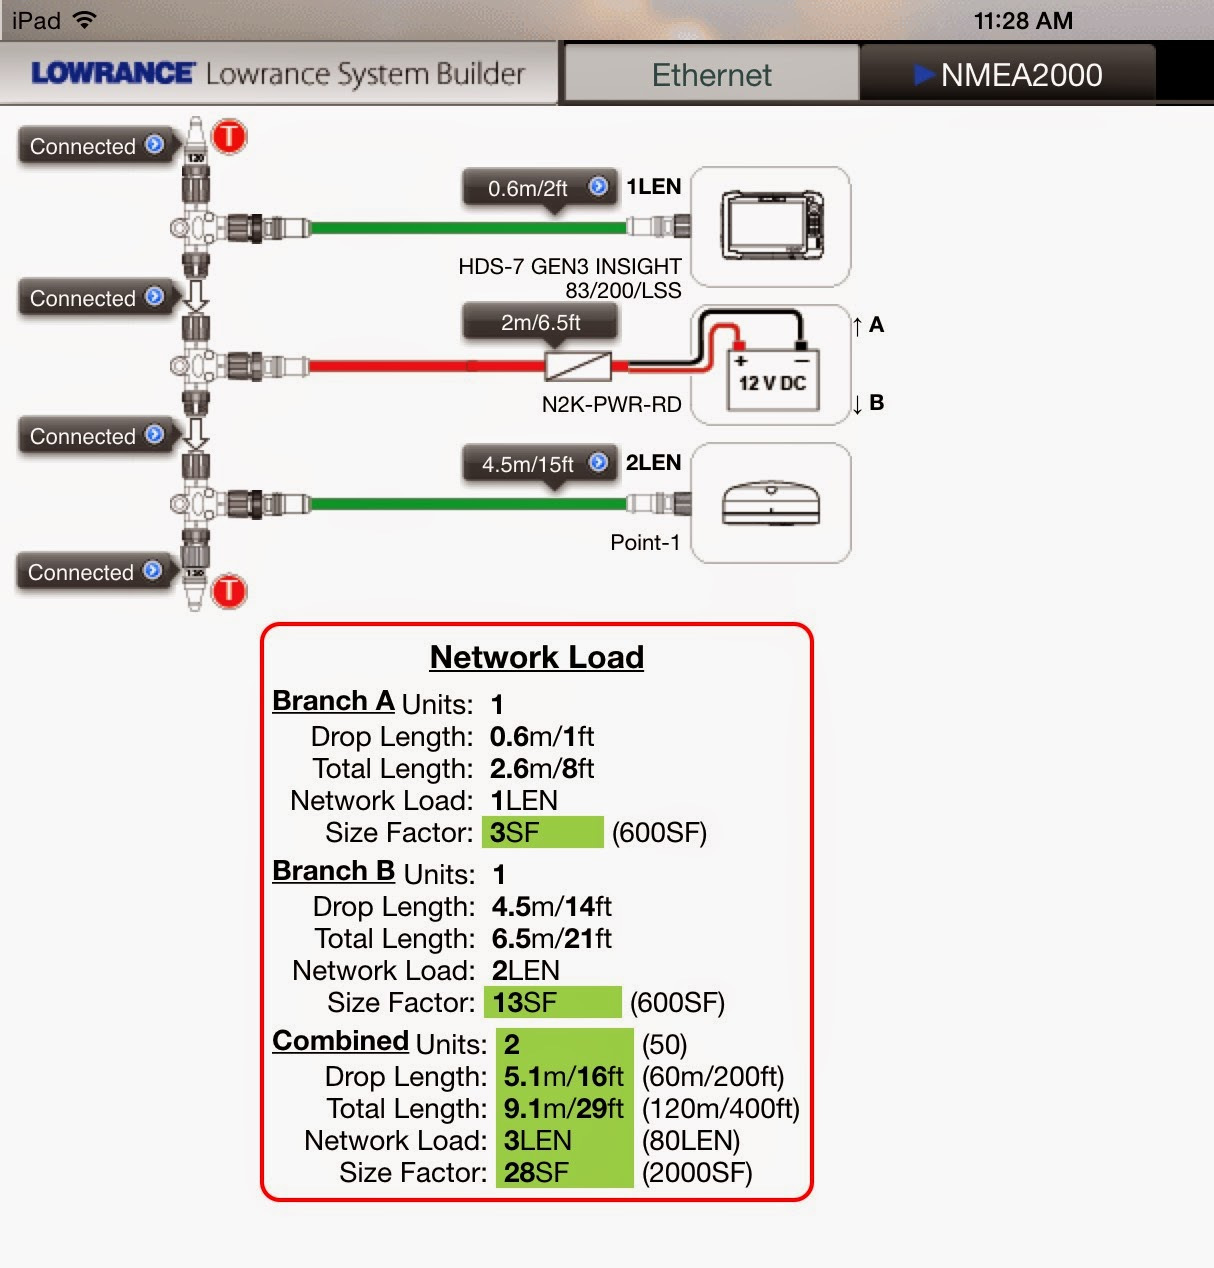 NMEAWiringDiagramGPS biobase portability options for your lowrance lowrance hds 7 wiring diagram at bakdesigns.co